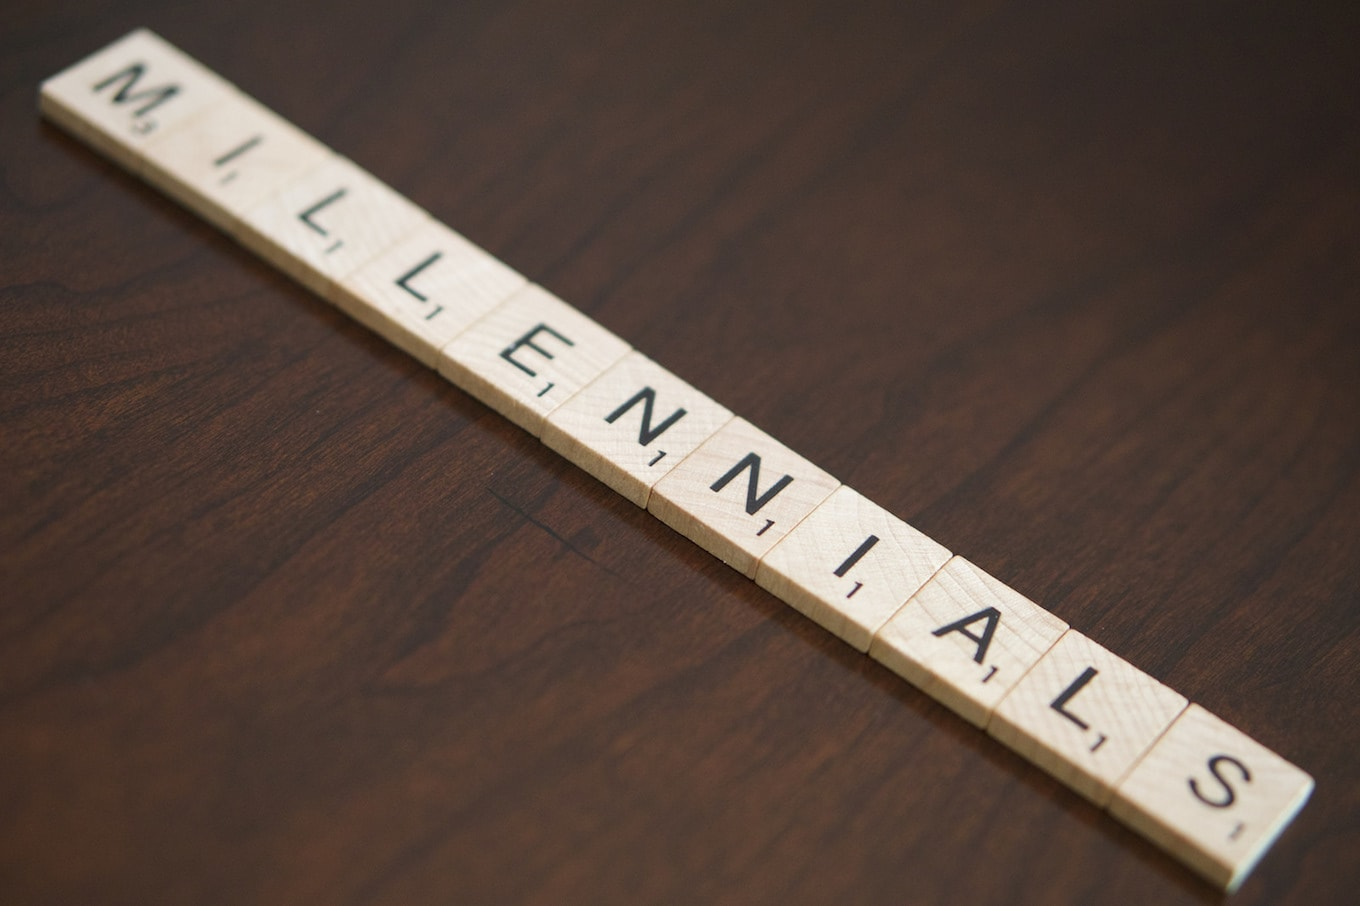 Millennials spelled in Scrabble tiles